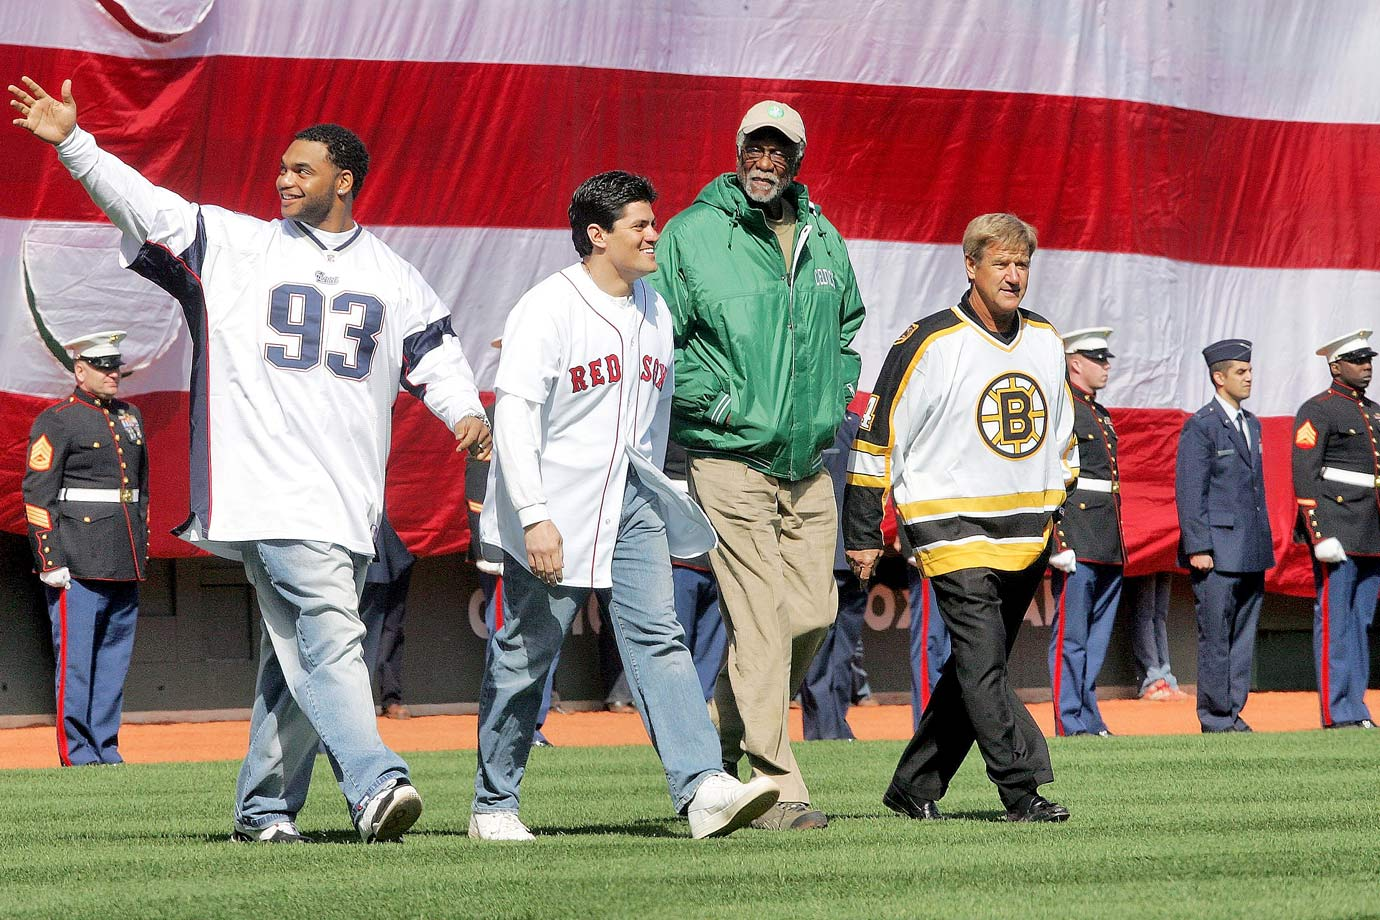 New England Patriots stars Richard Seymour and Tedy Bruschi walk to the mound alongside Bill Russell and Bobby Orr to toss the first pitch before the Red Sox home opener against the Yankees. After the Red Sox banished the Curse of the Bambino the previous fall, the team brought in some of Boston's biggest champions for the ceremony.